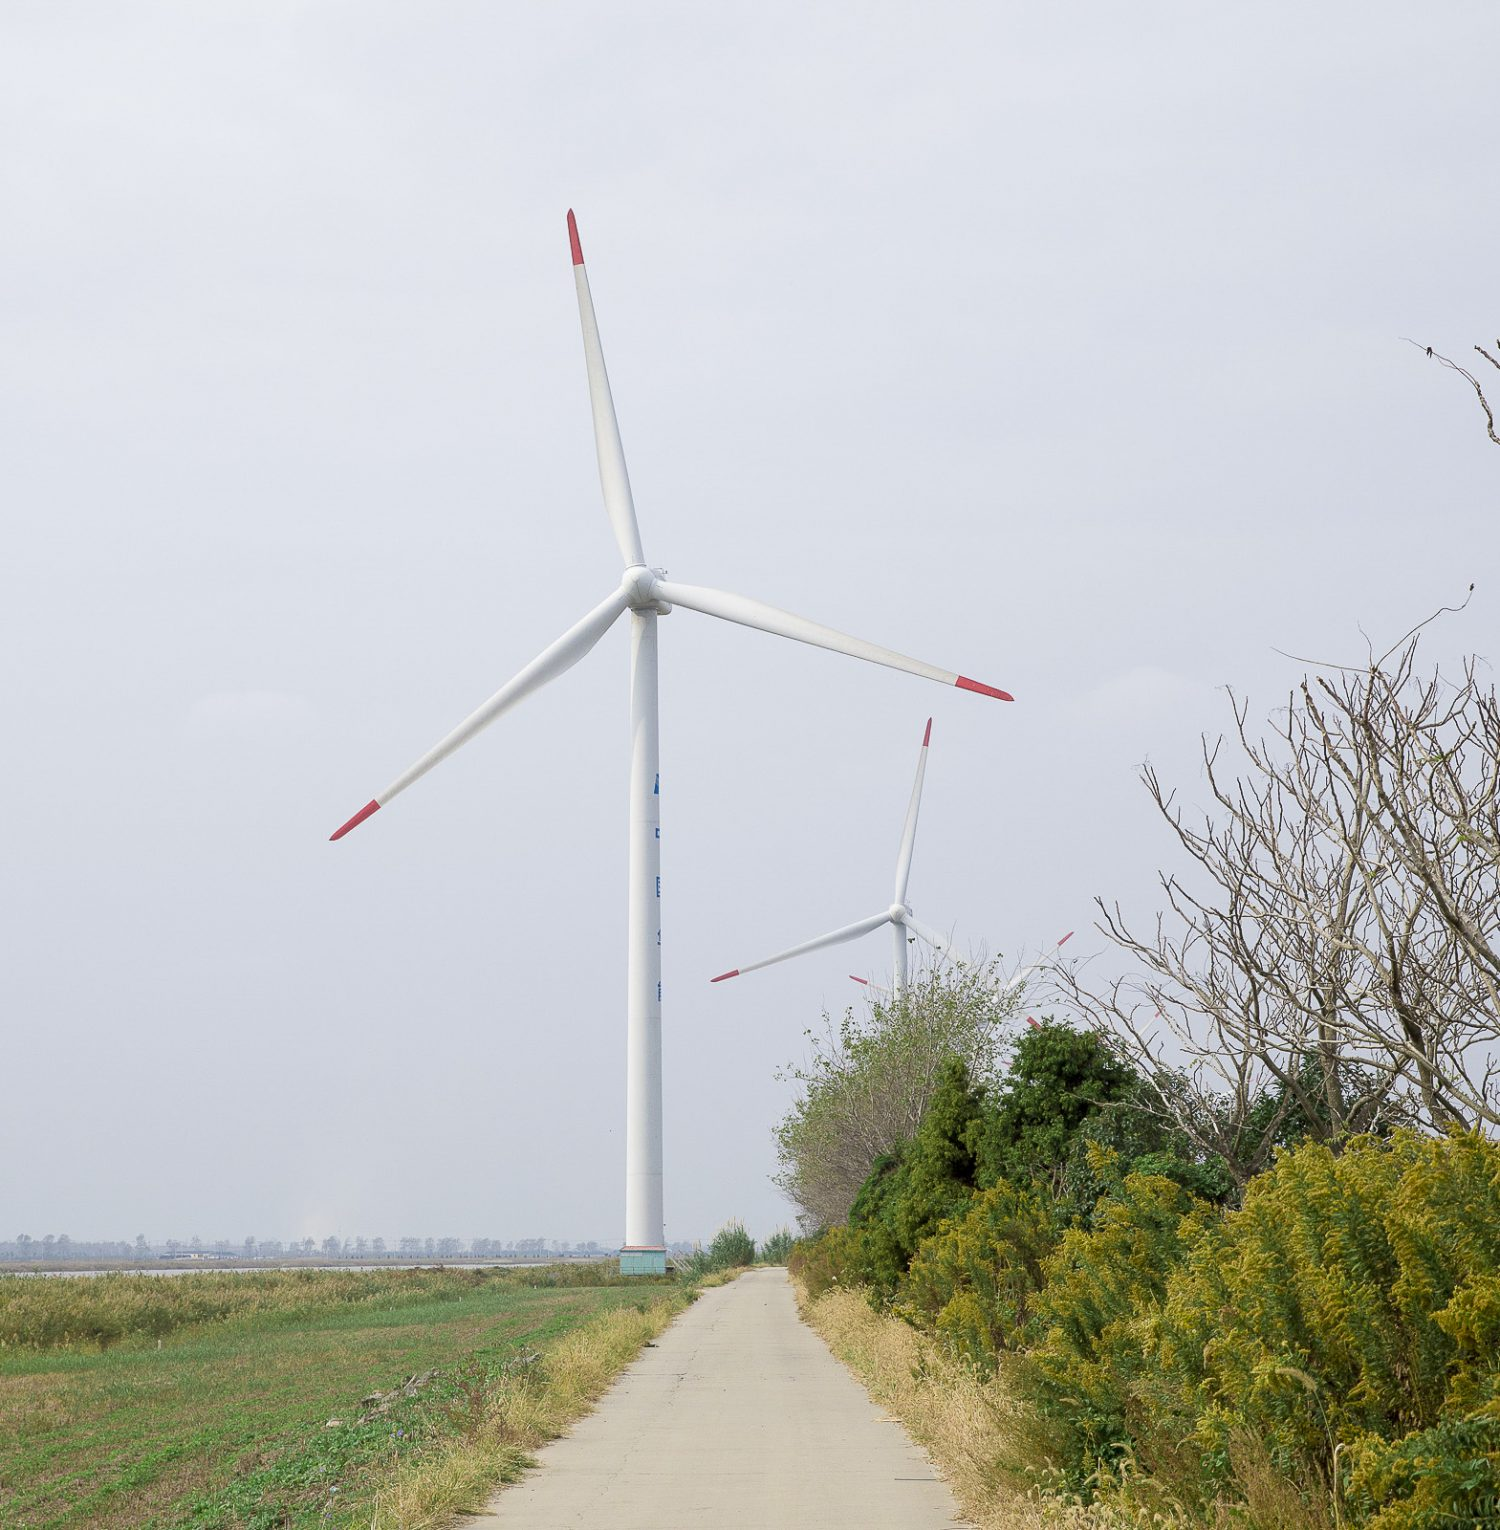 When it comes to wind power, lubricants make a big difference